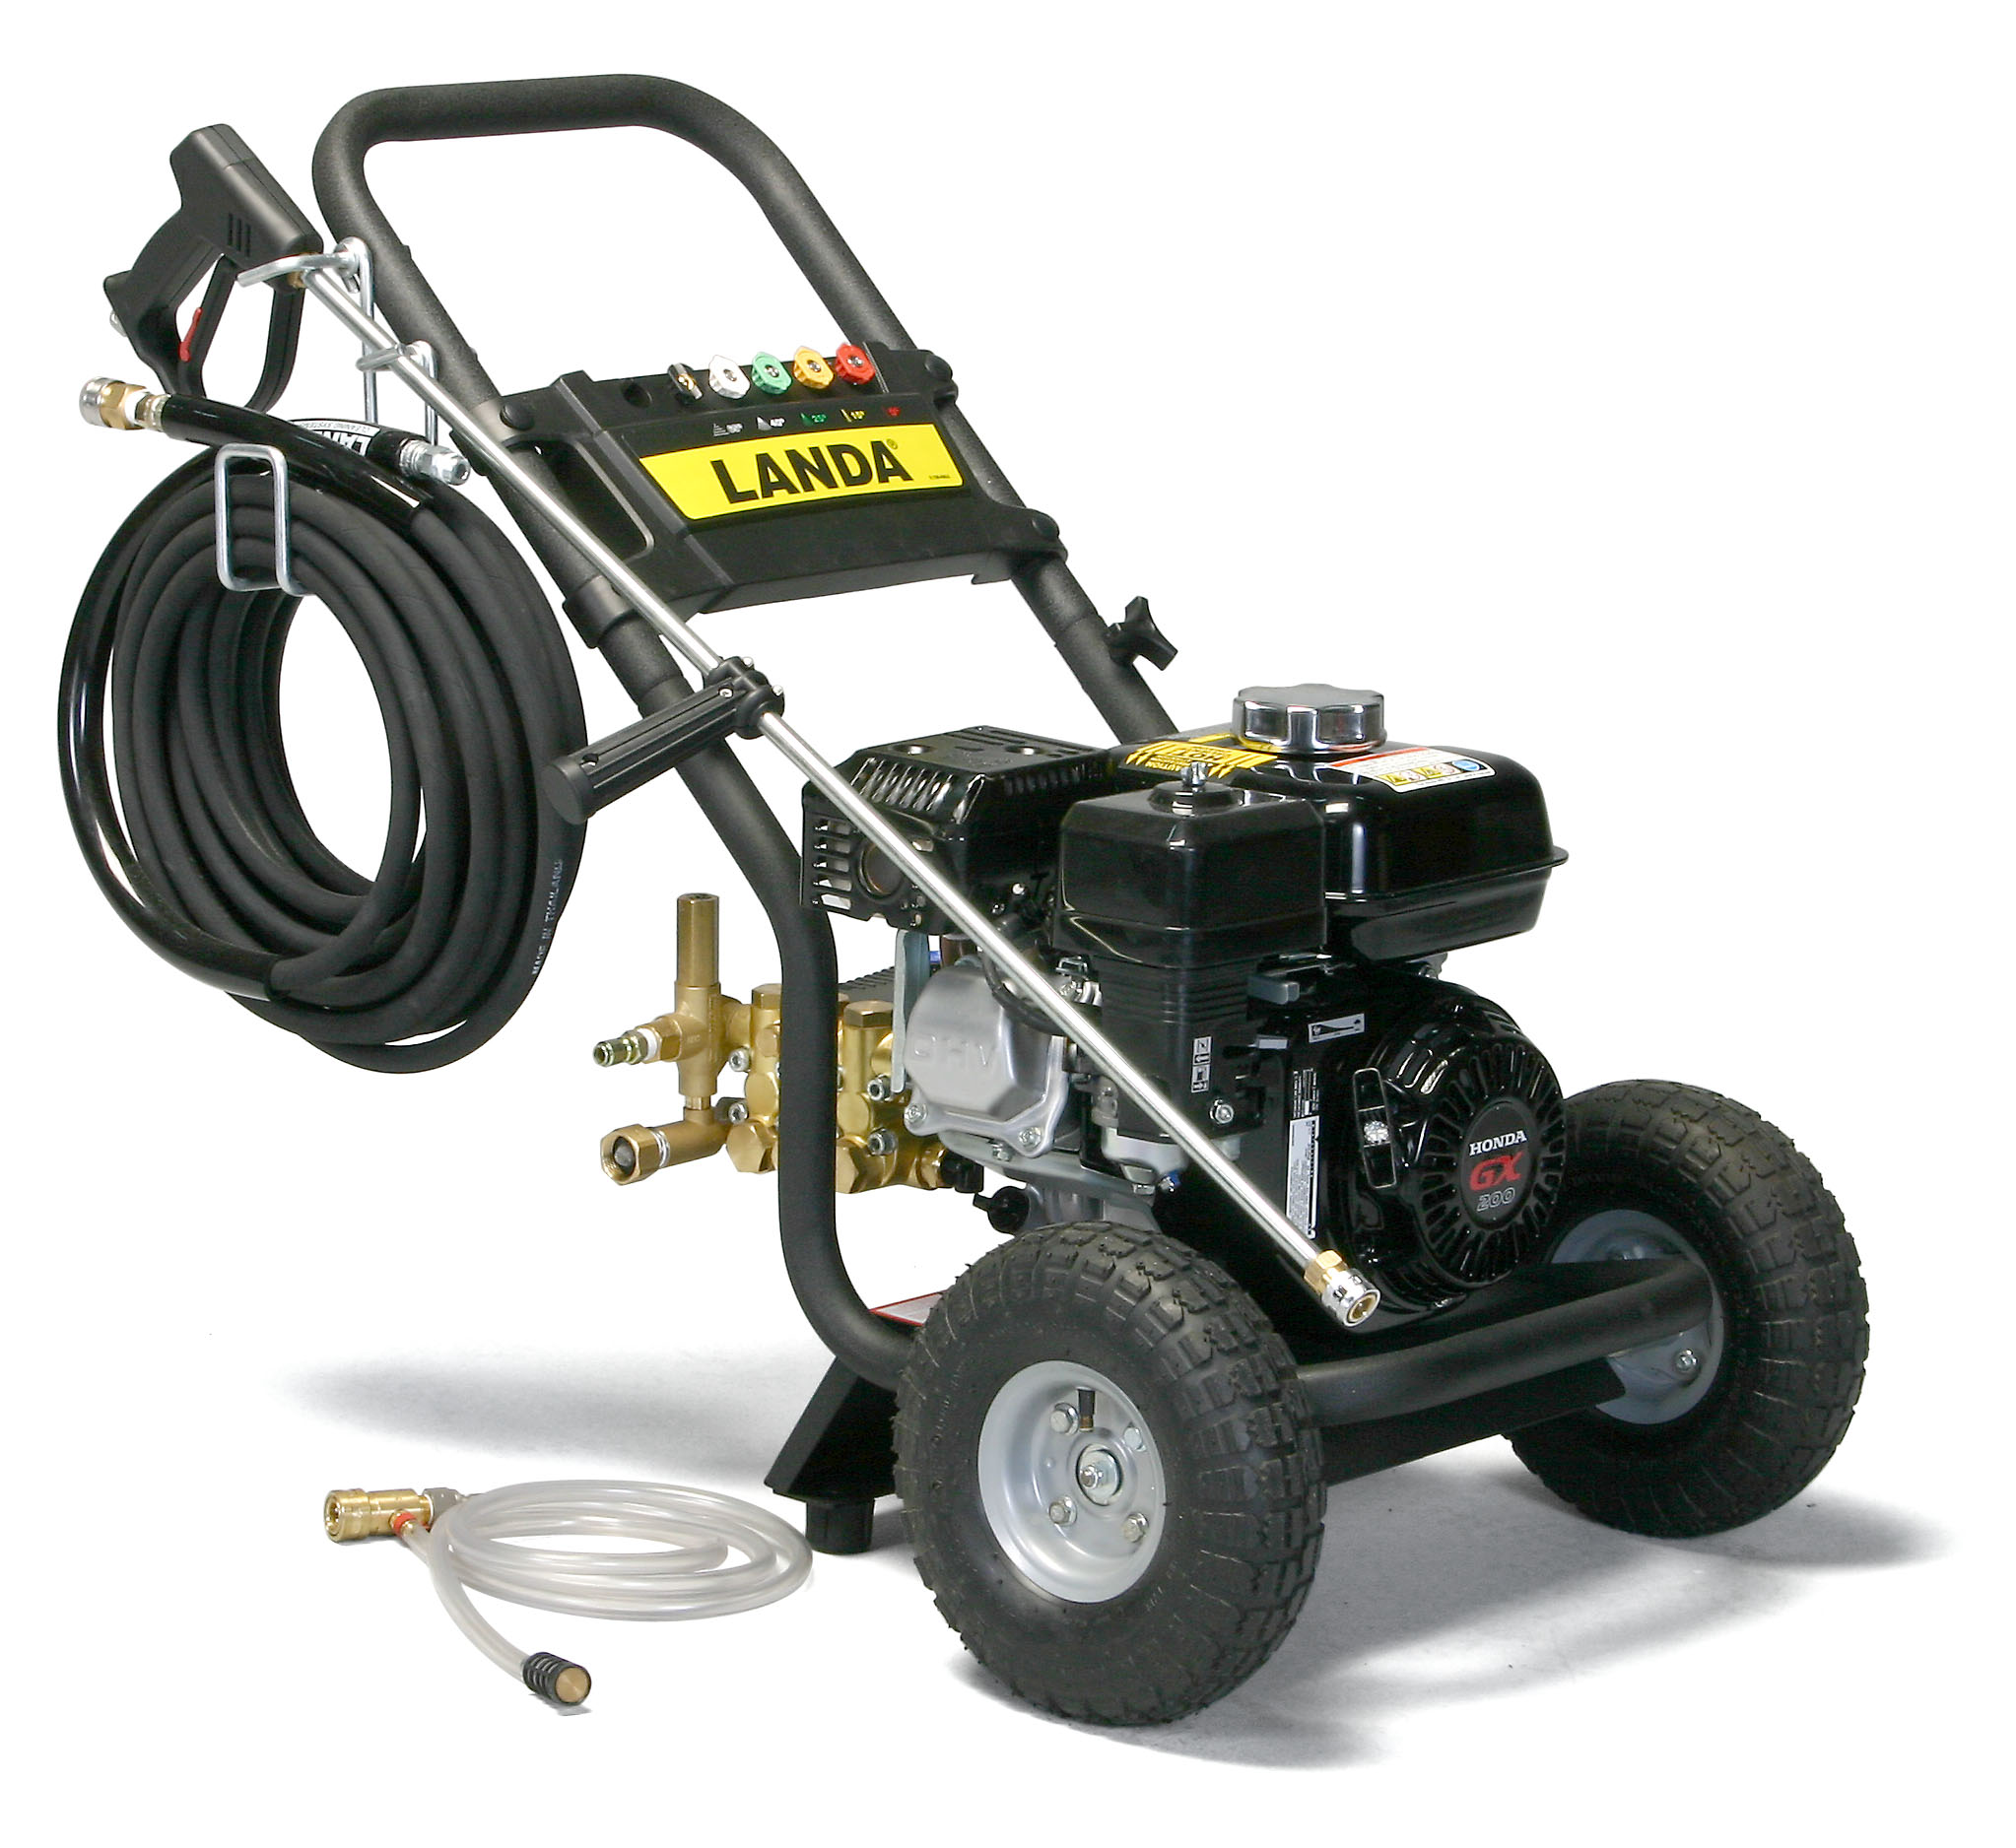 Landa Cold Water Direct Drive Pressure Washer PD4-35324